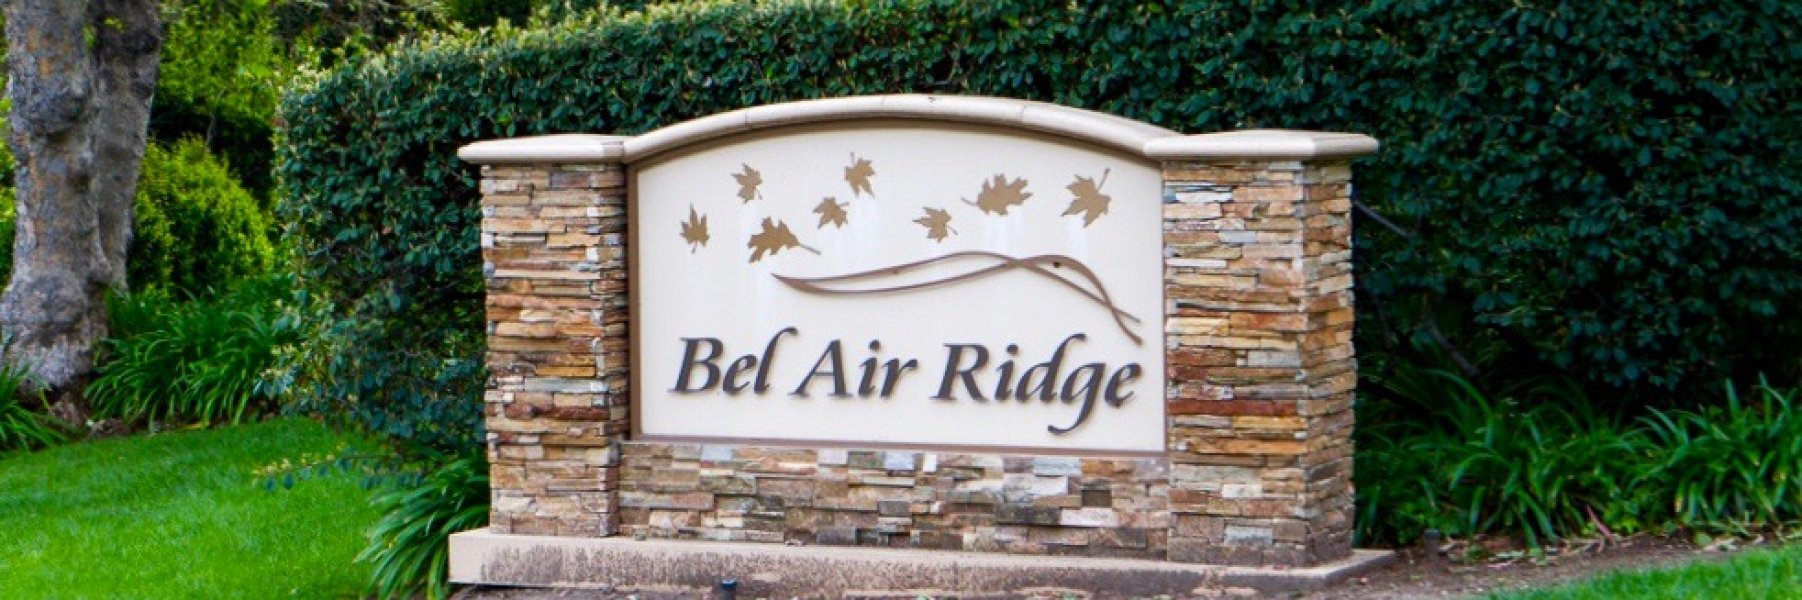 Bel Air Ridge is a community of homes in Los Angeles California